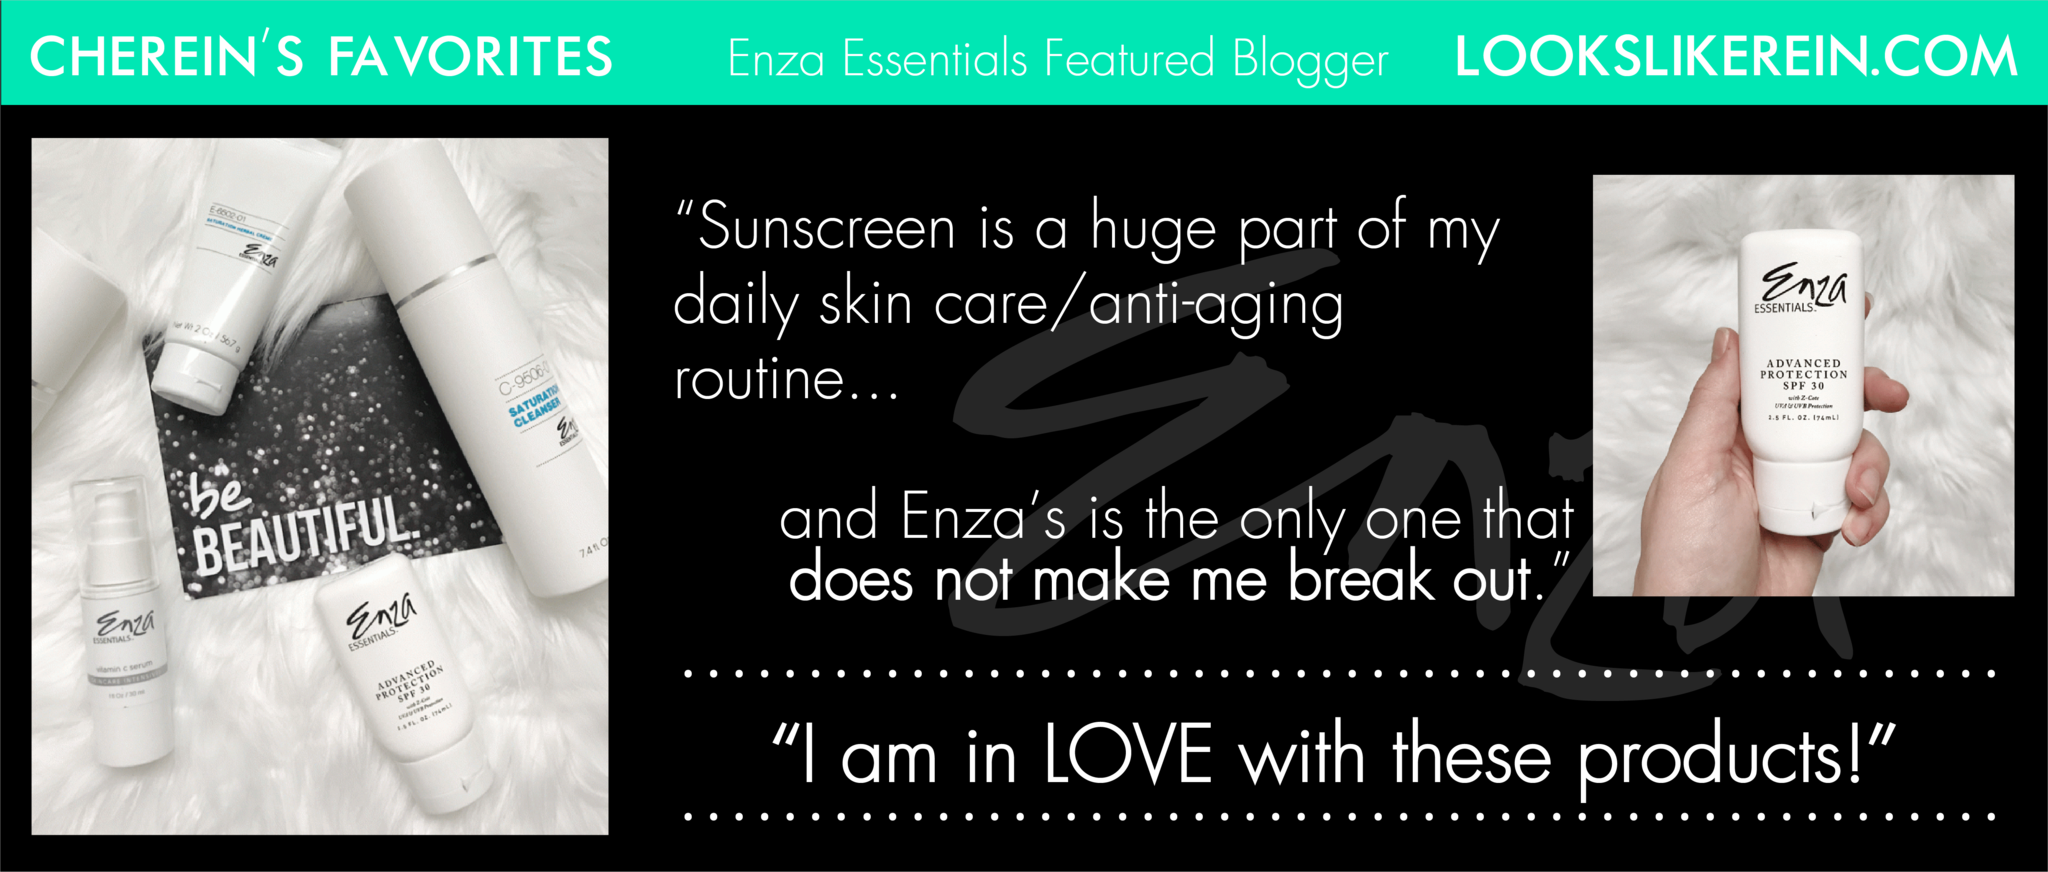 Looks Like Rein Cherein's Enza Essentials Review